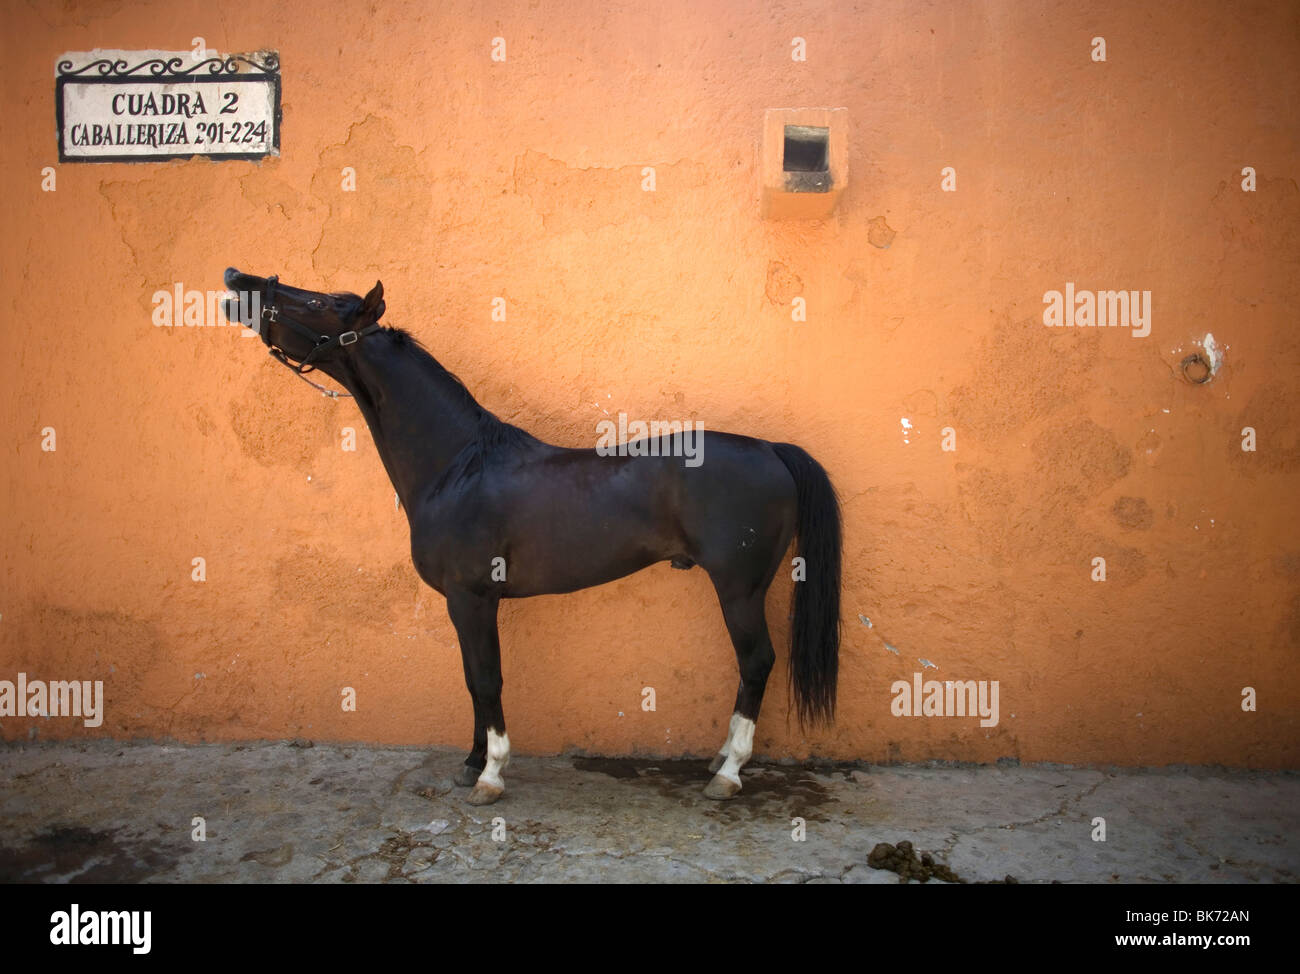 A horse stands in a stable in Mexico City - Stock Image